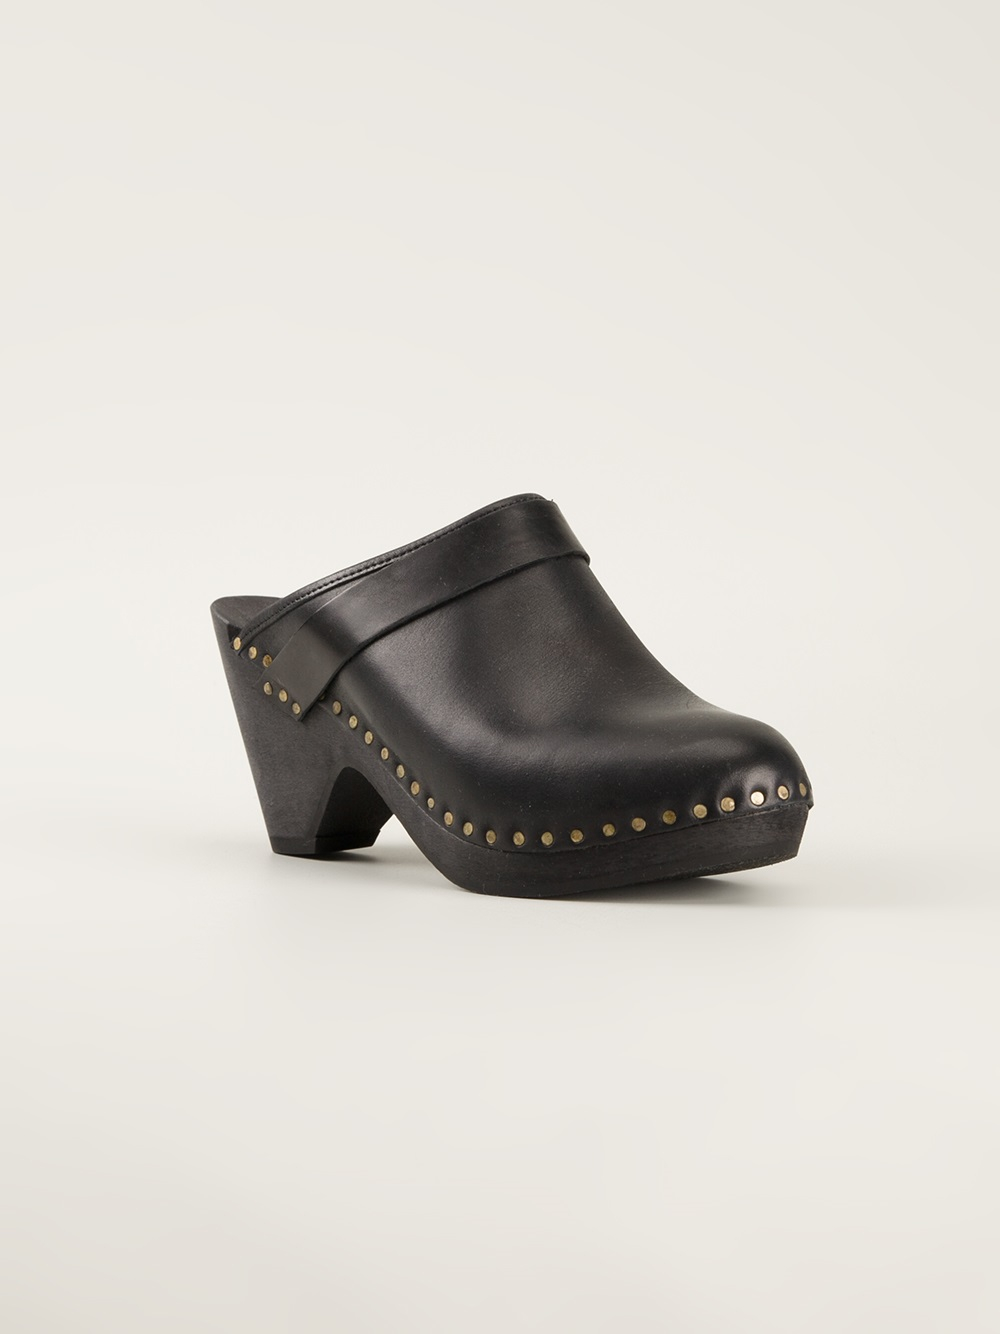 Isabel Marant Towson Clogs in Black - Lyst